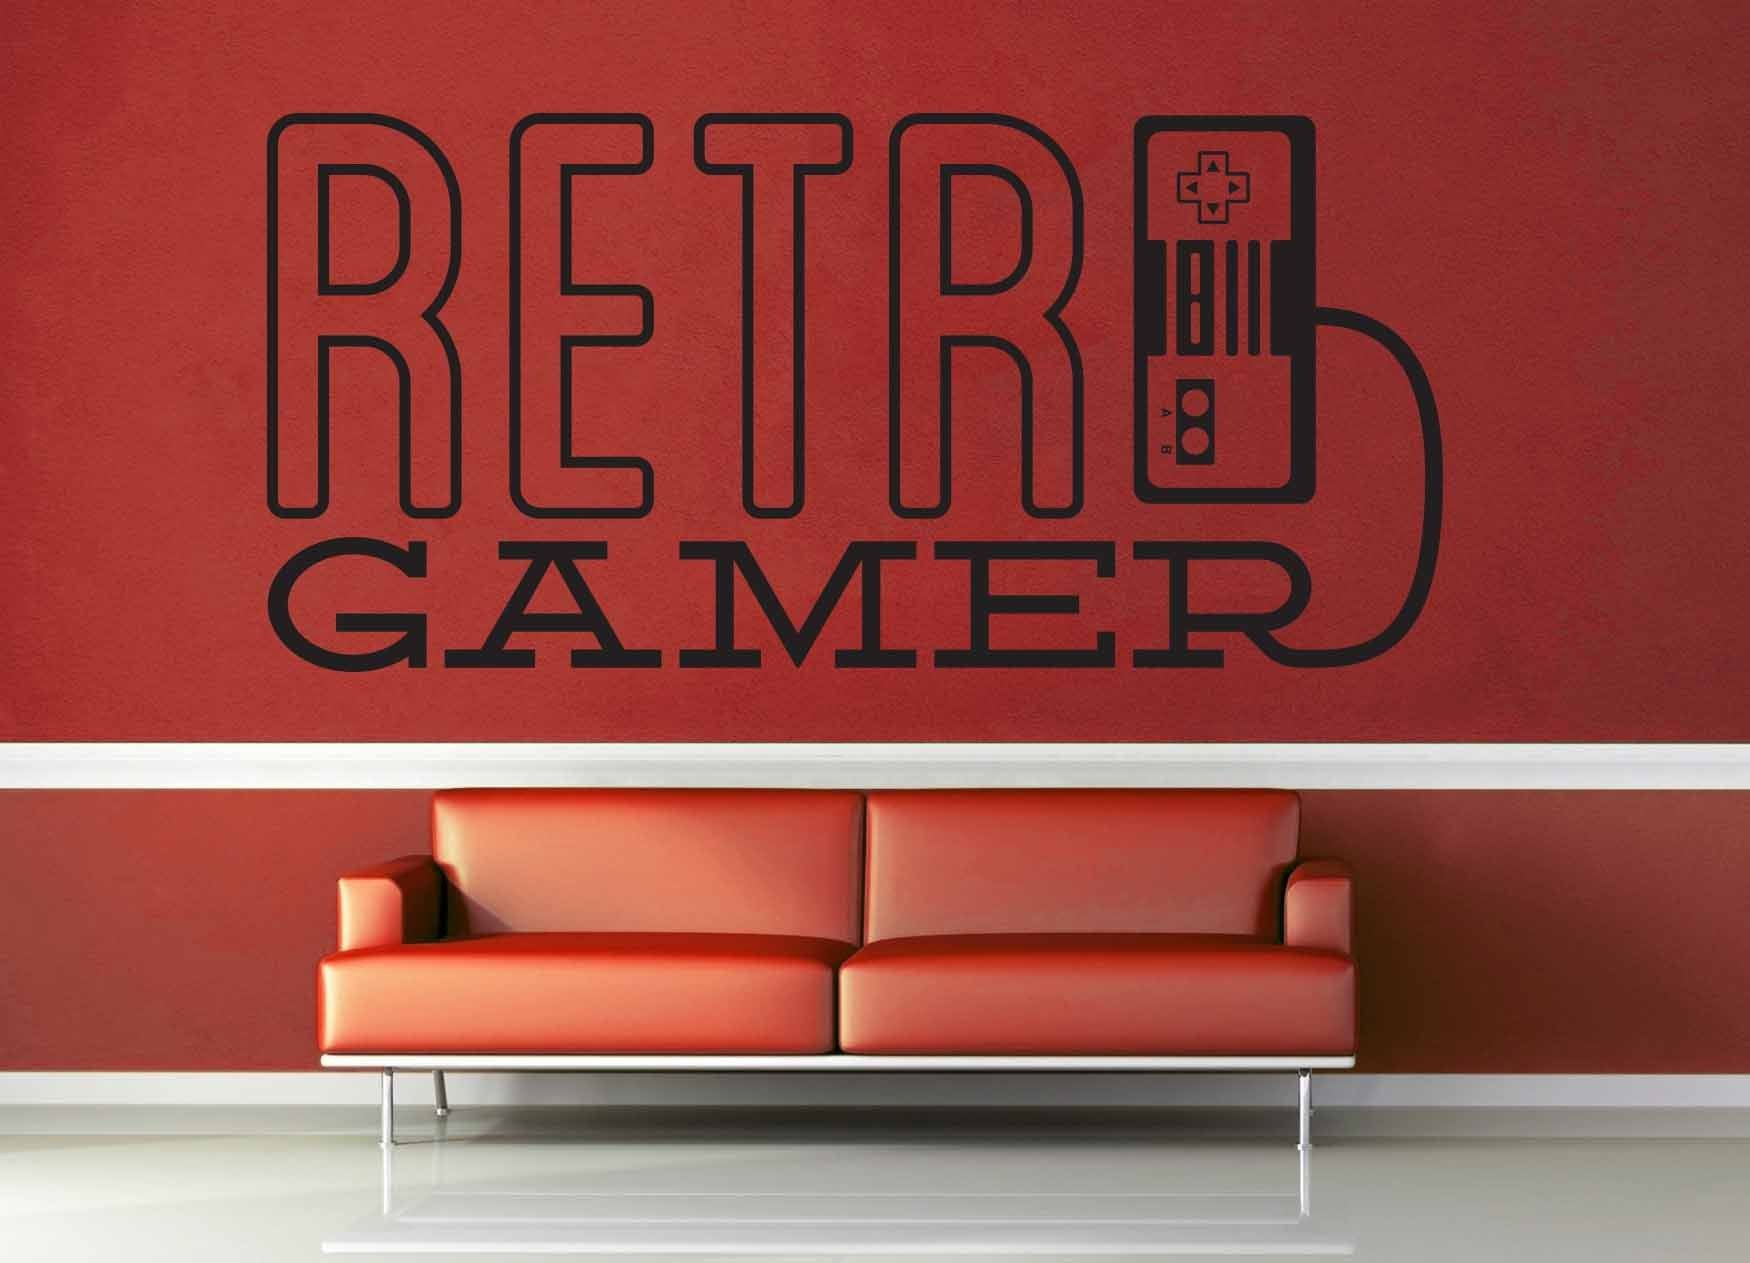 Retro Game - Gamer Décor - Wall Decal